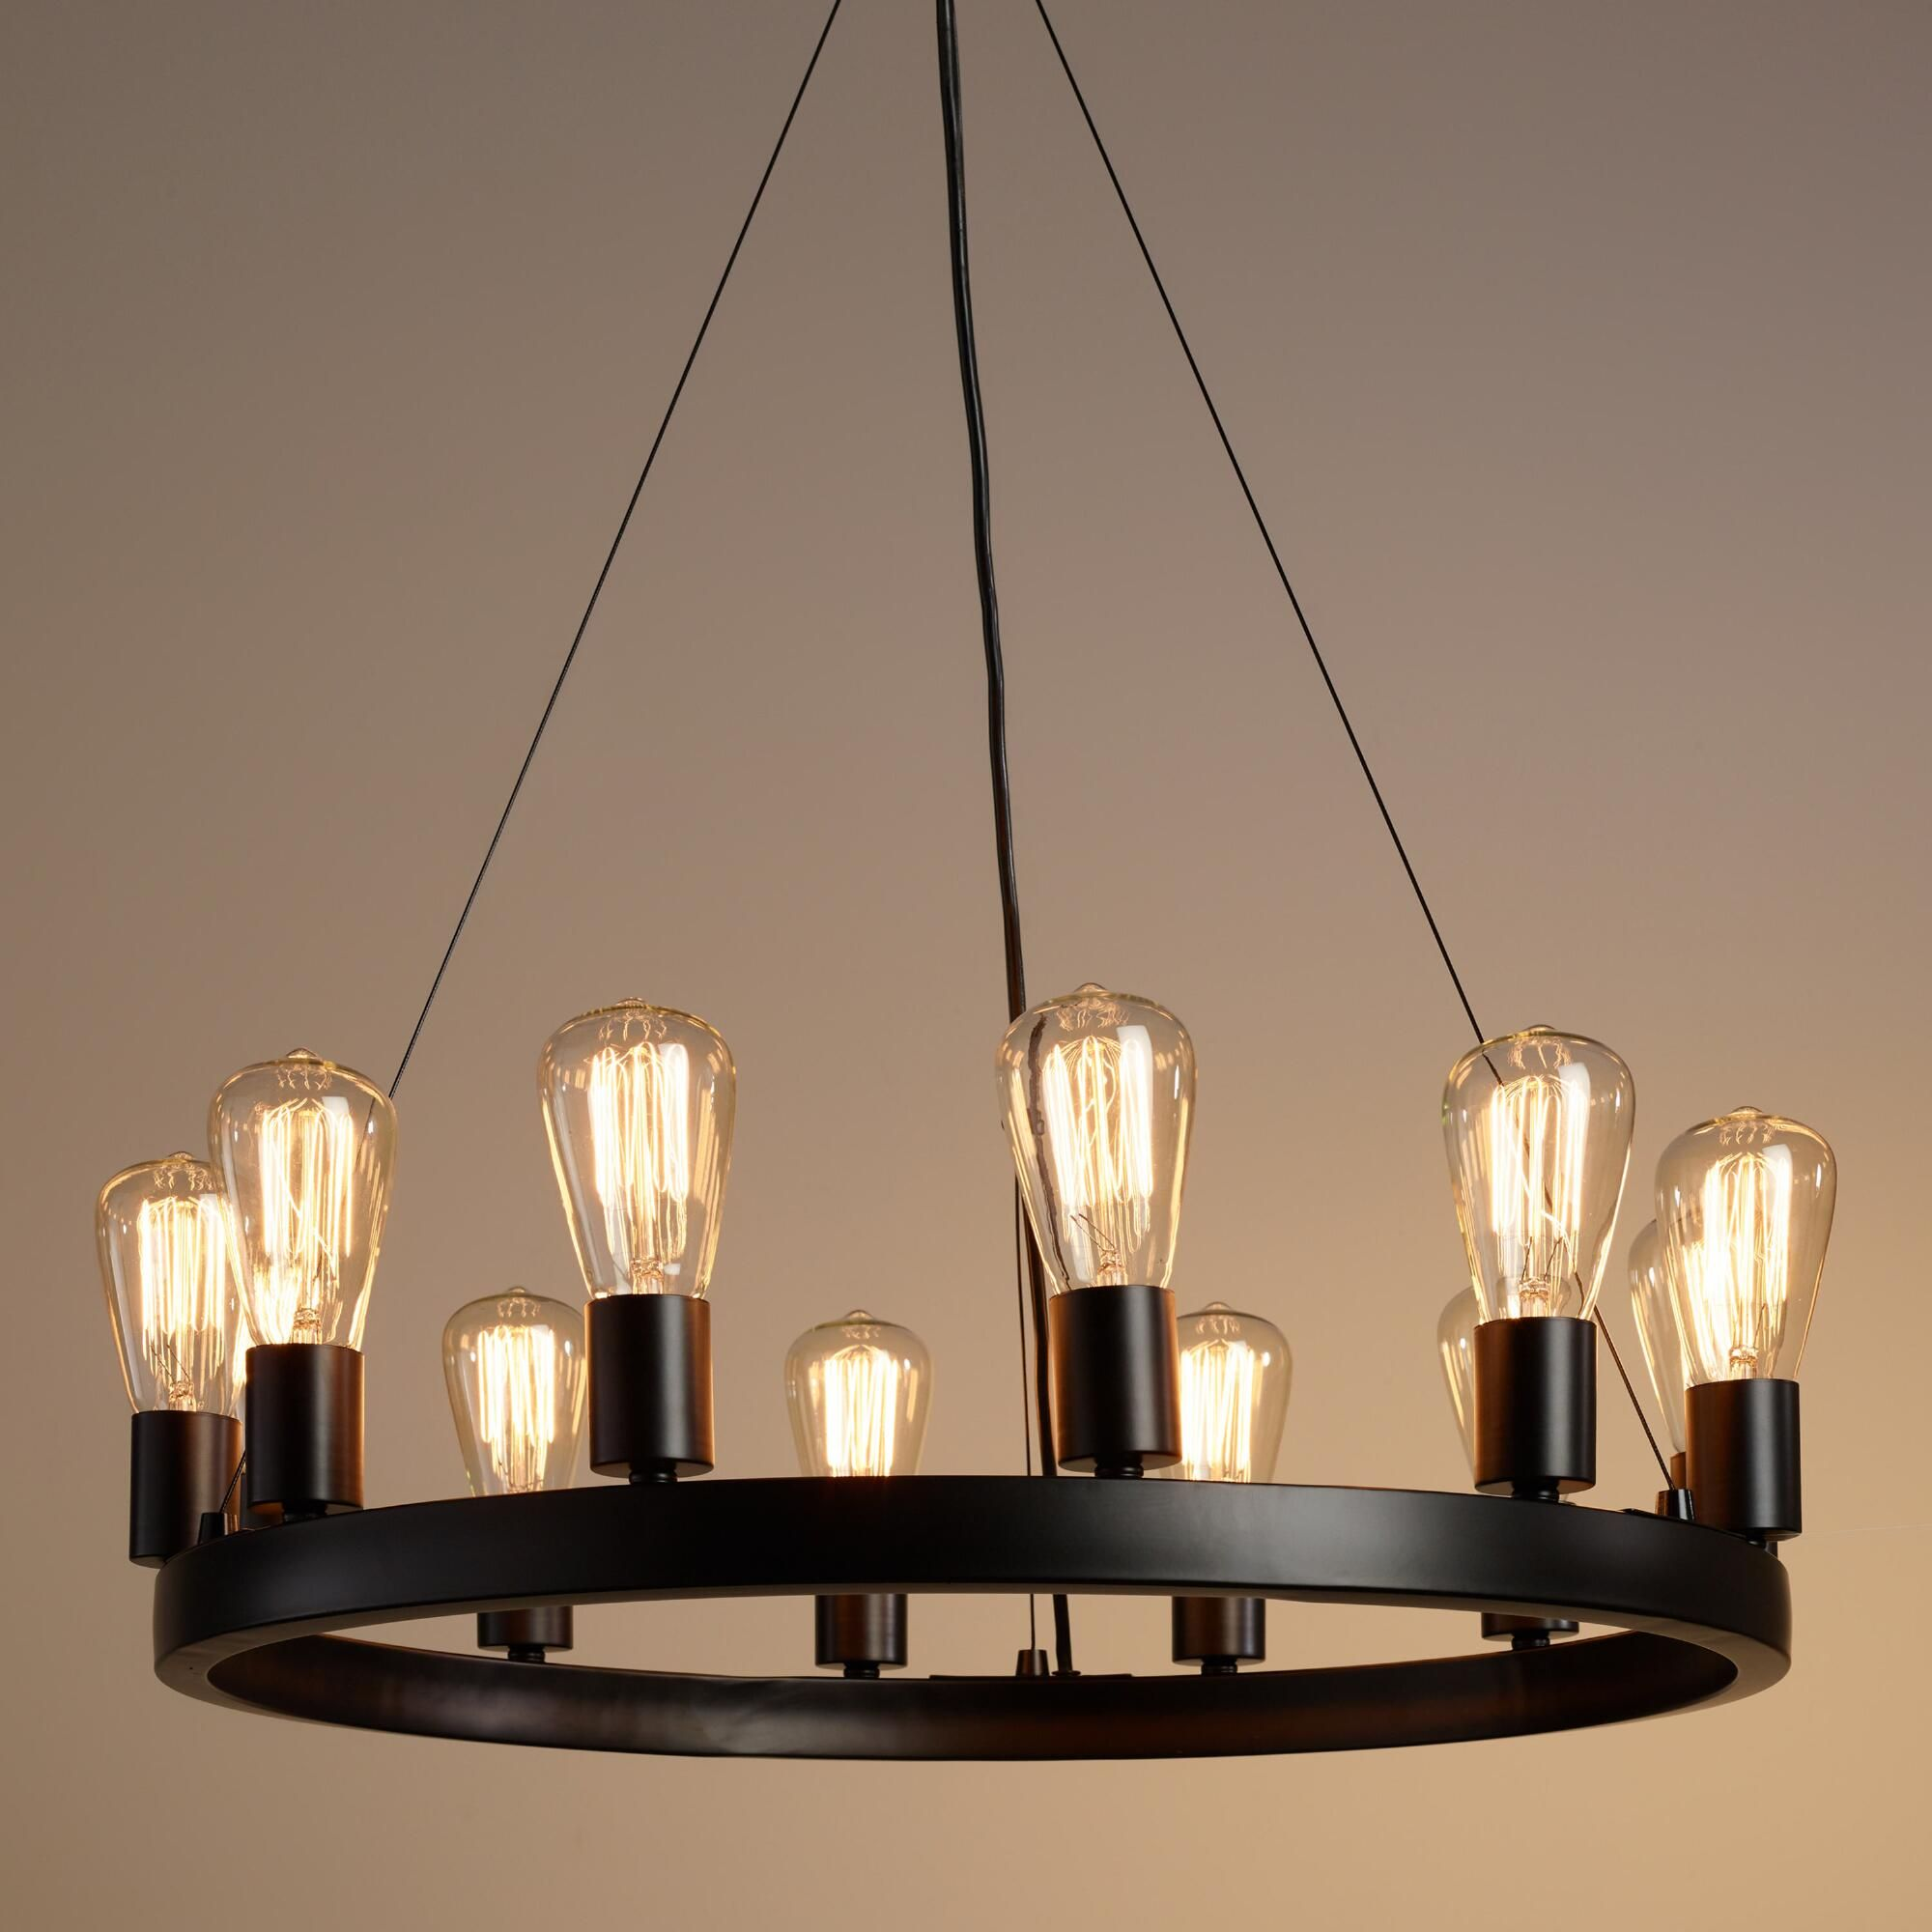 Industrial Style Light Fixtures Home Crafted Of Iron With An Industrial Style Black Finish Our